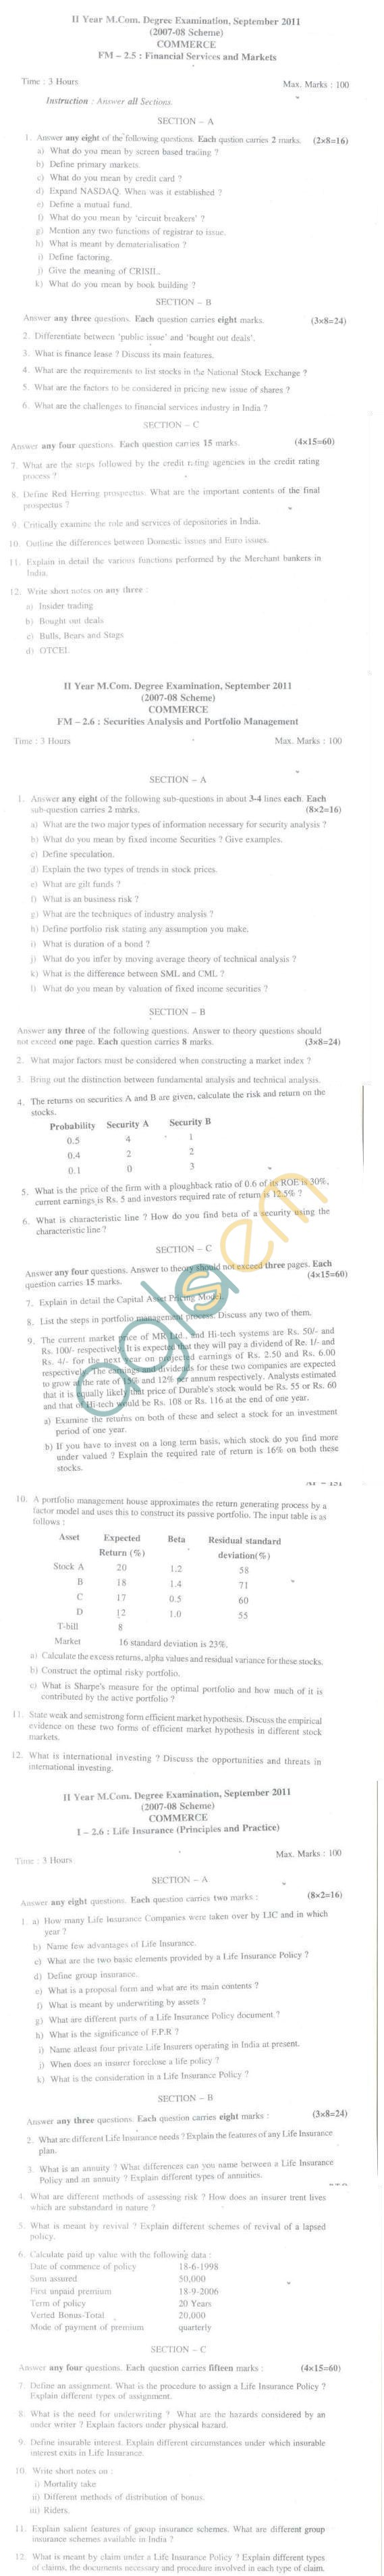 Bangalore University Question Paper September 2011 II Year M.Com.Degree Examination - Commerce